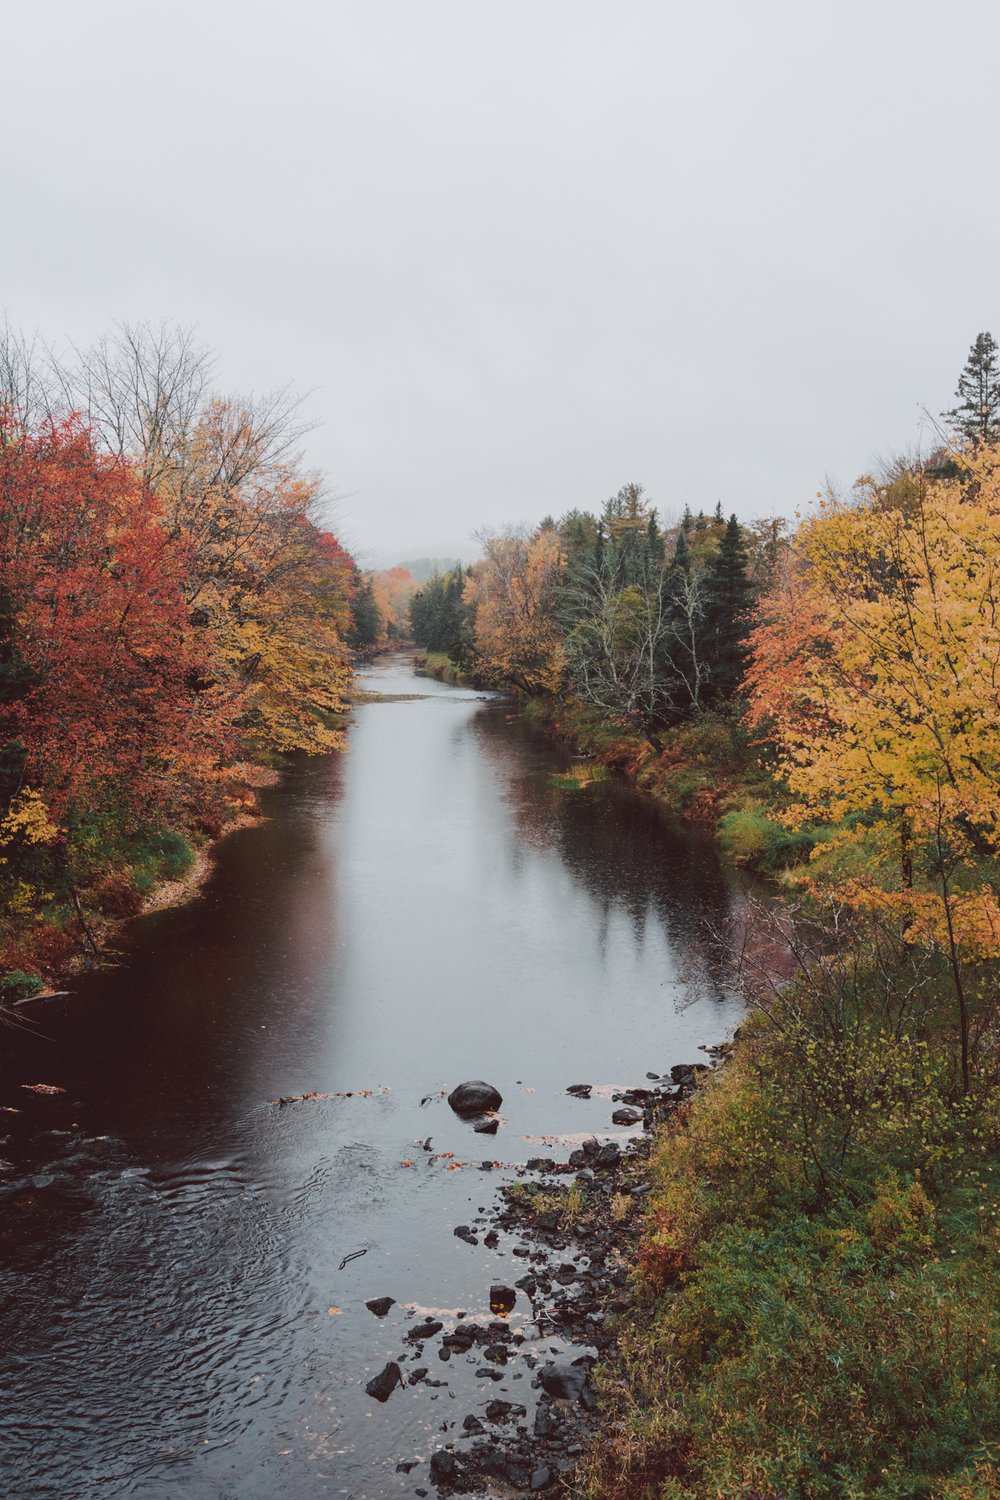 Things to do in #Maine - Road trip and Leaf peeping - Complete guide on things to do in Maine in the Fall